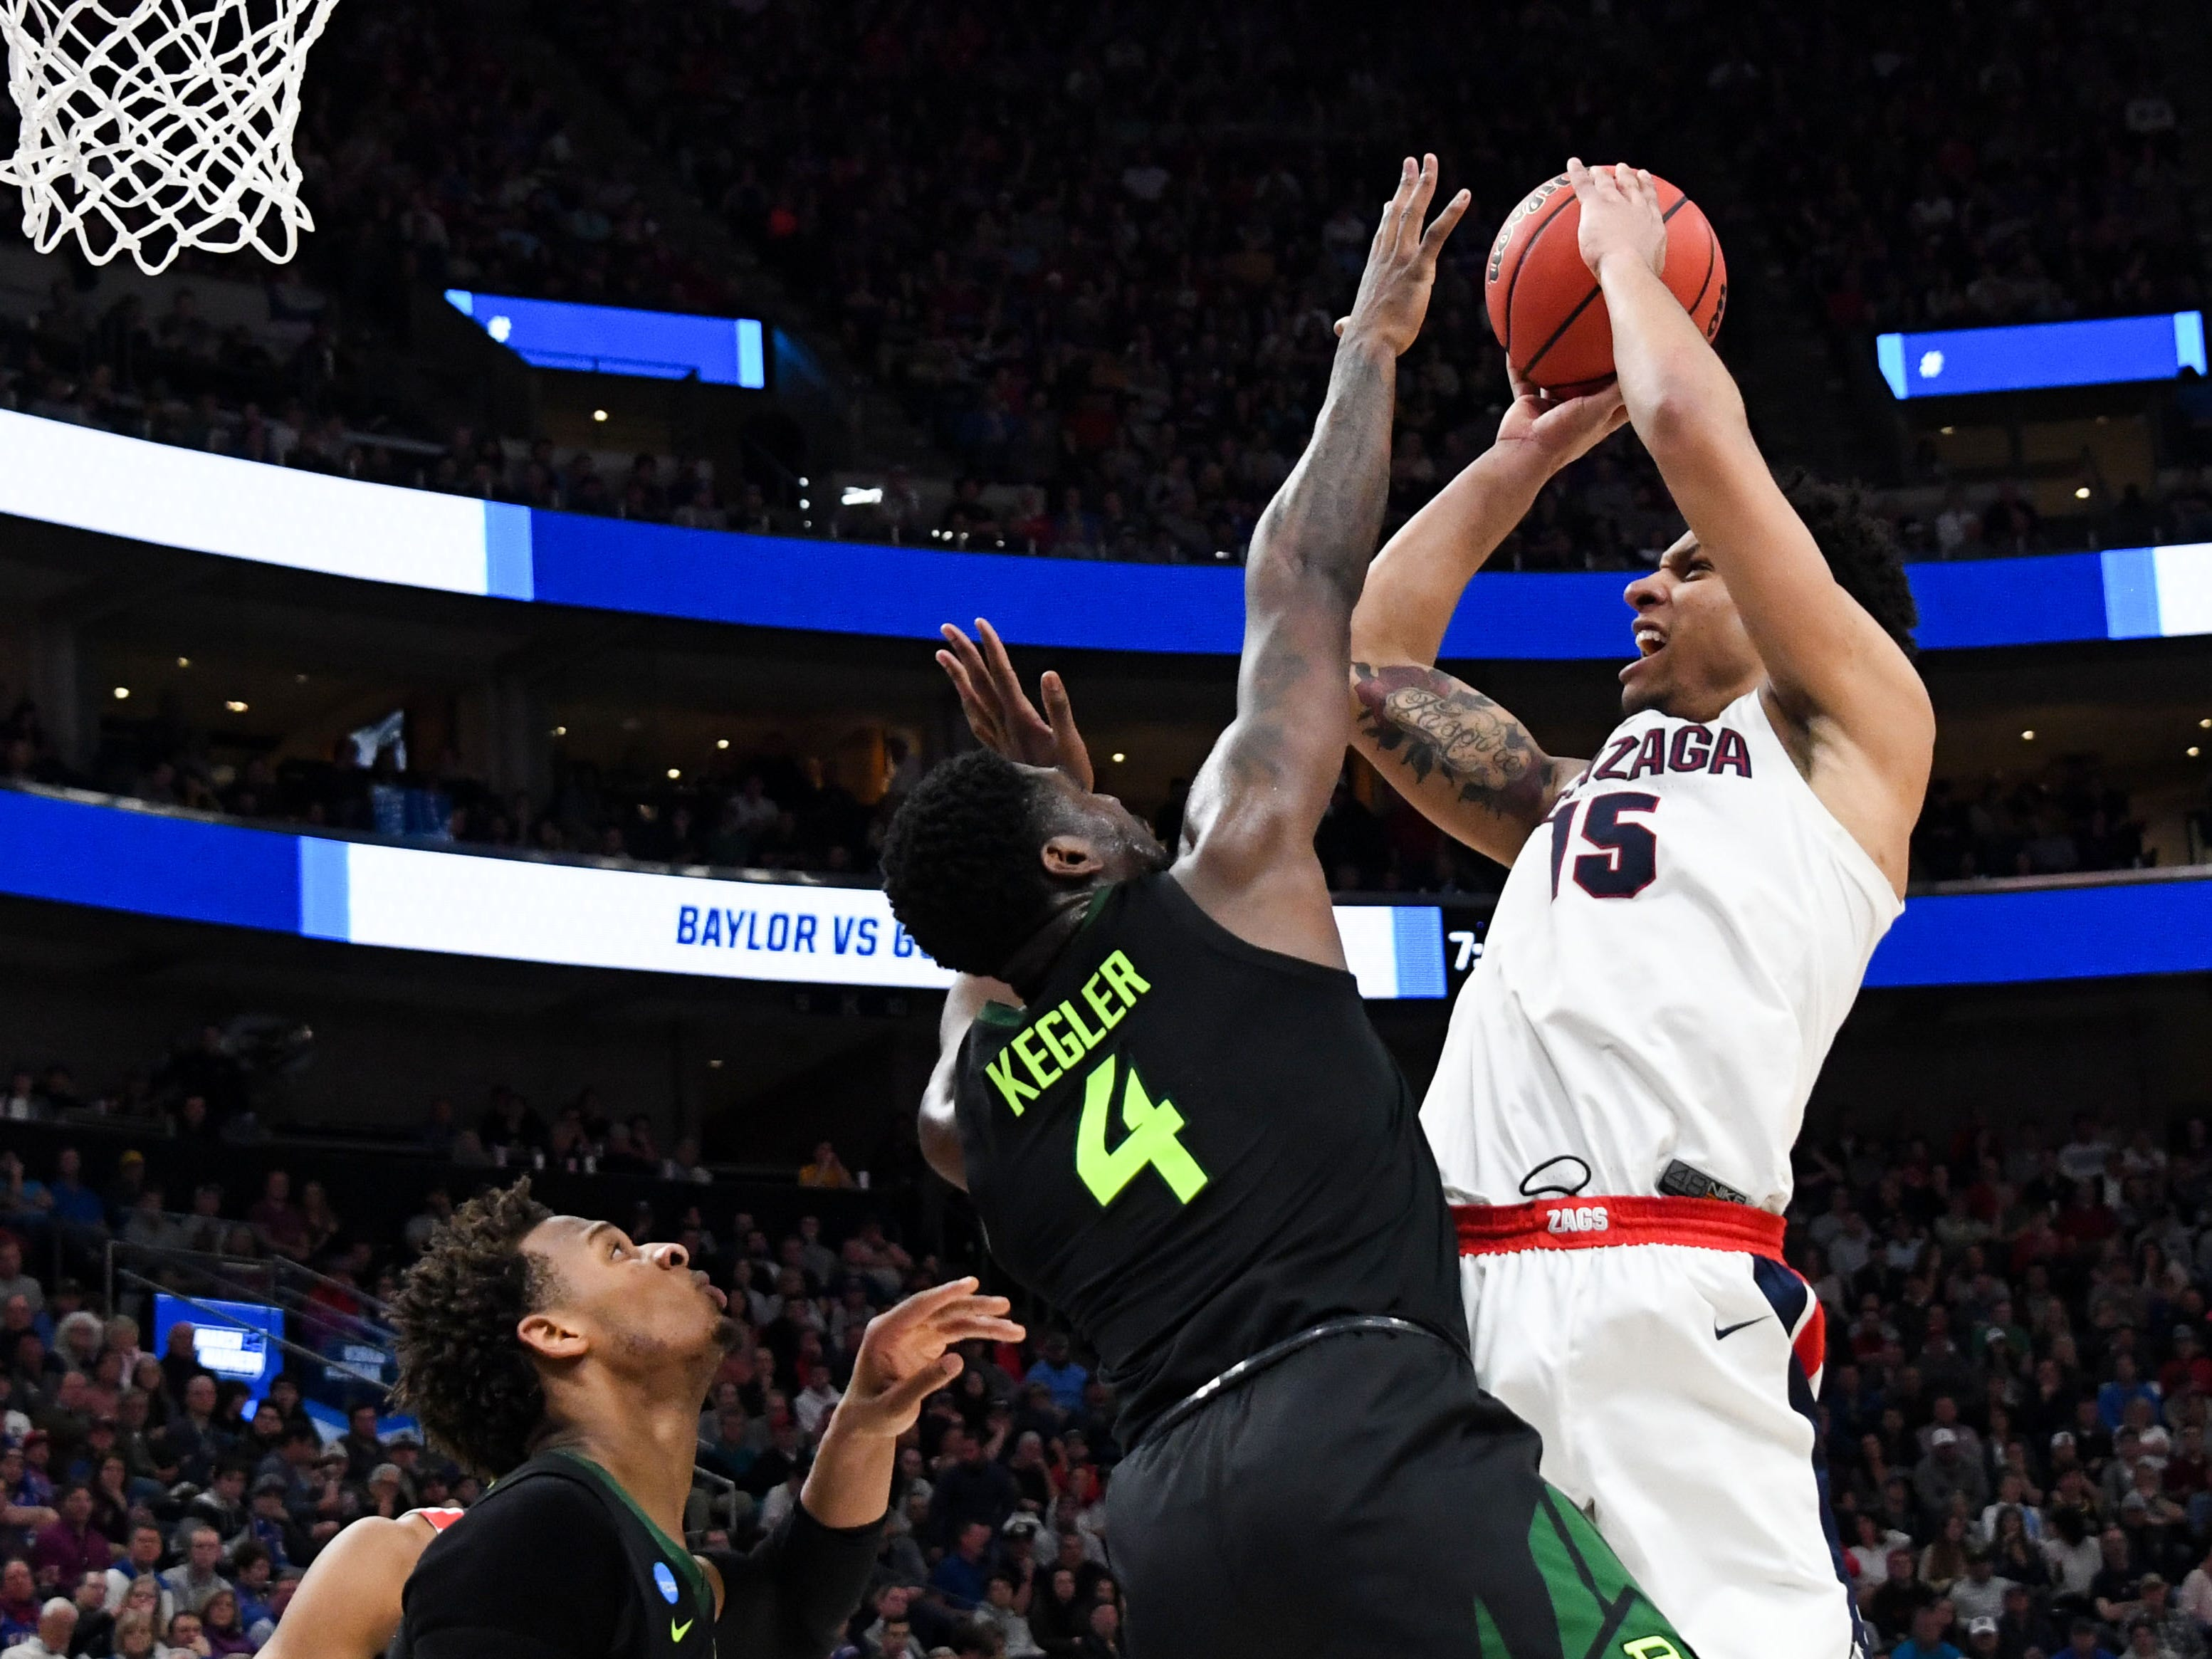 Round of 32: Gonzaga forward Brandon Clarke goes up for a shot on Baylor guard Mario Kegler. Clarke had 36 points in the Bulldogs' 83-71 win against the Bears.